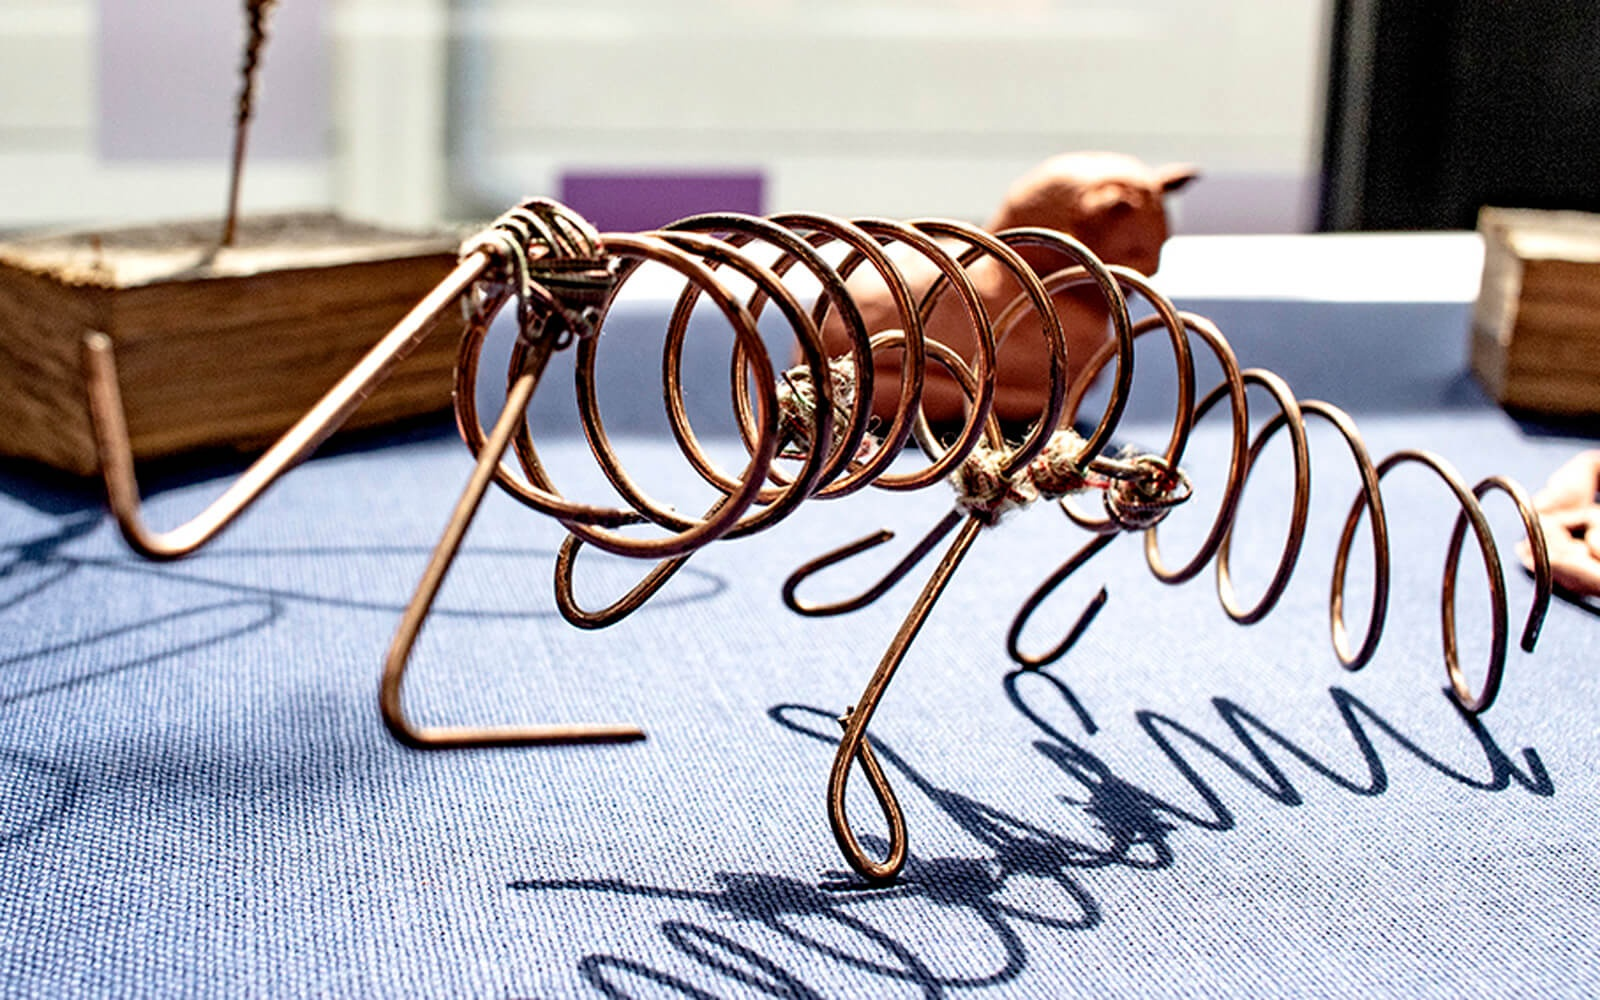 Wire model by art student